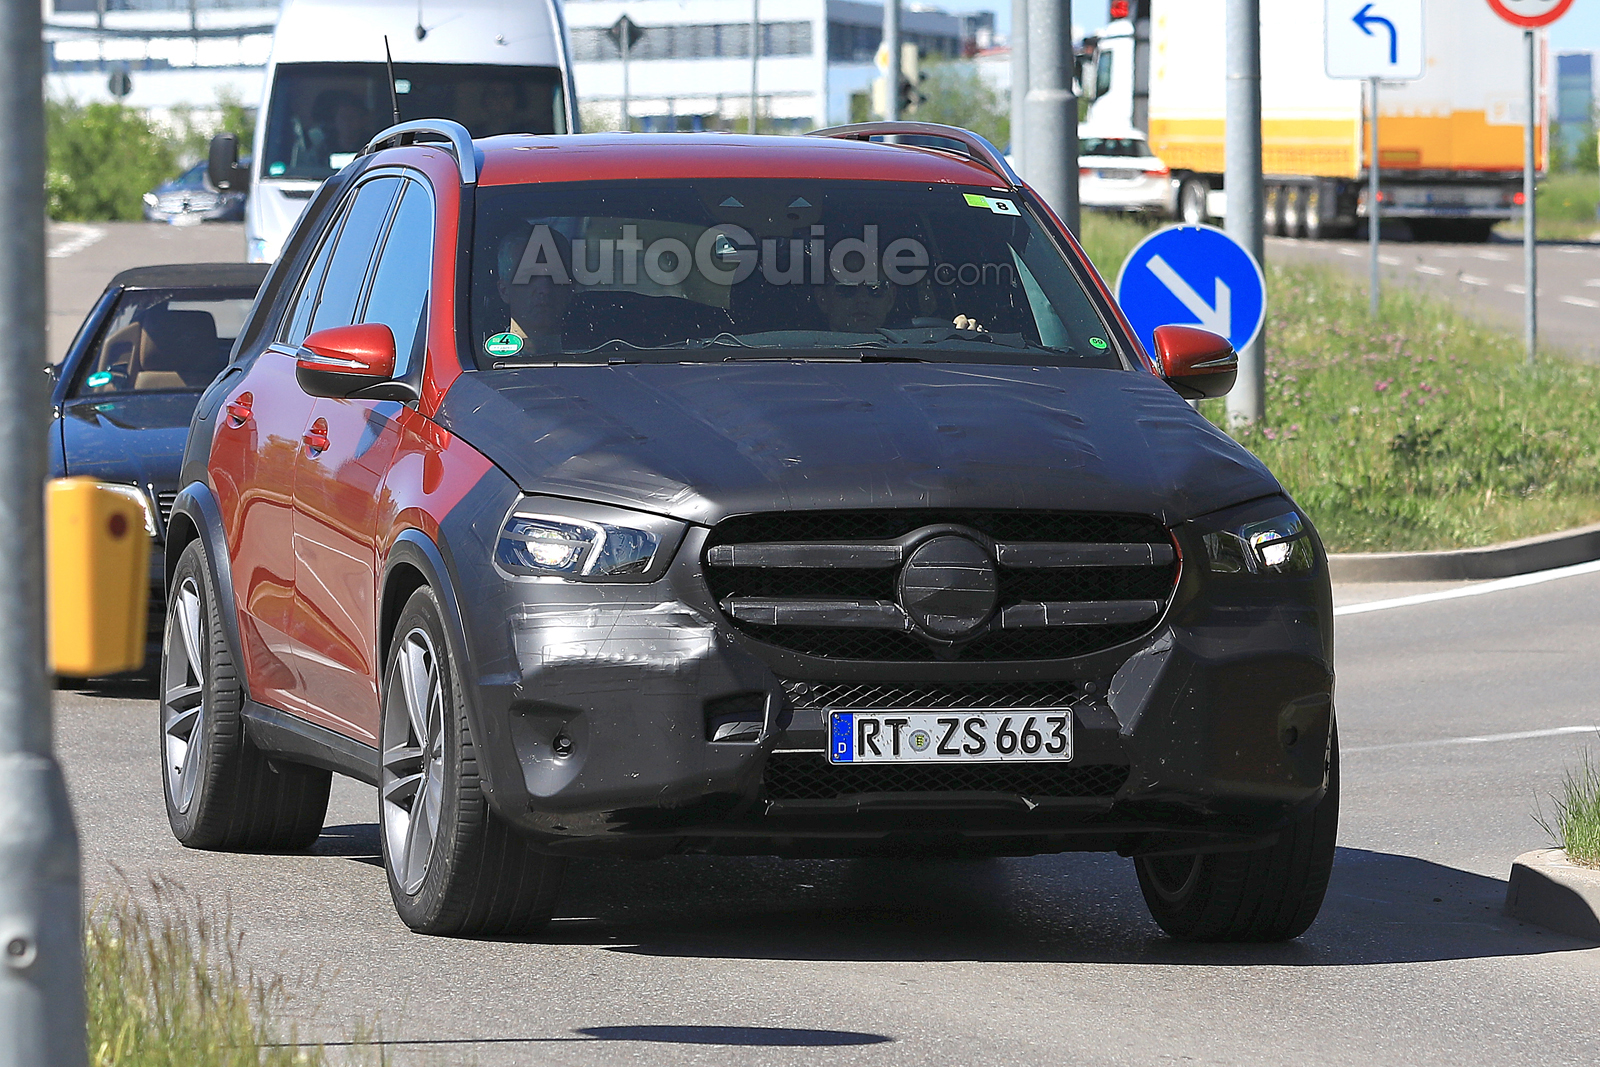 Mercedes Smart Car >> 2019 Mercedes GLE Spied Looking Showroom Ready » AutoGuide.com News